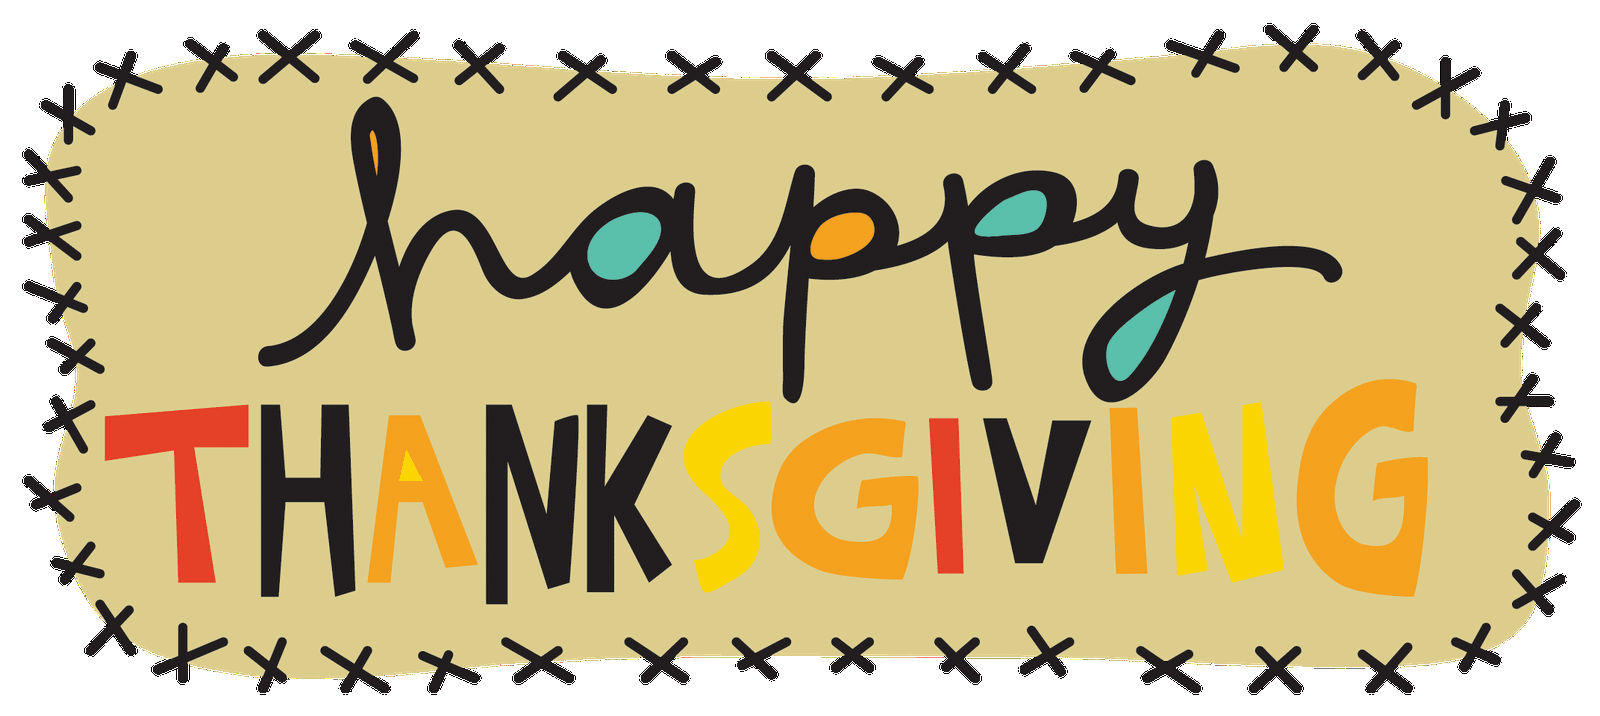 thanksgiving clipart for kids [ 1600 x 716 Pixel ]